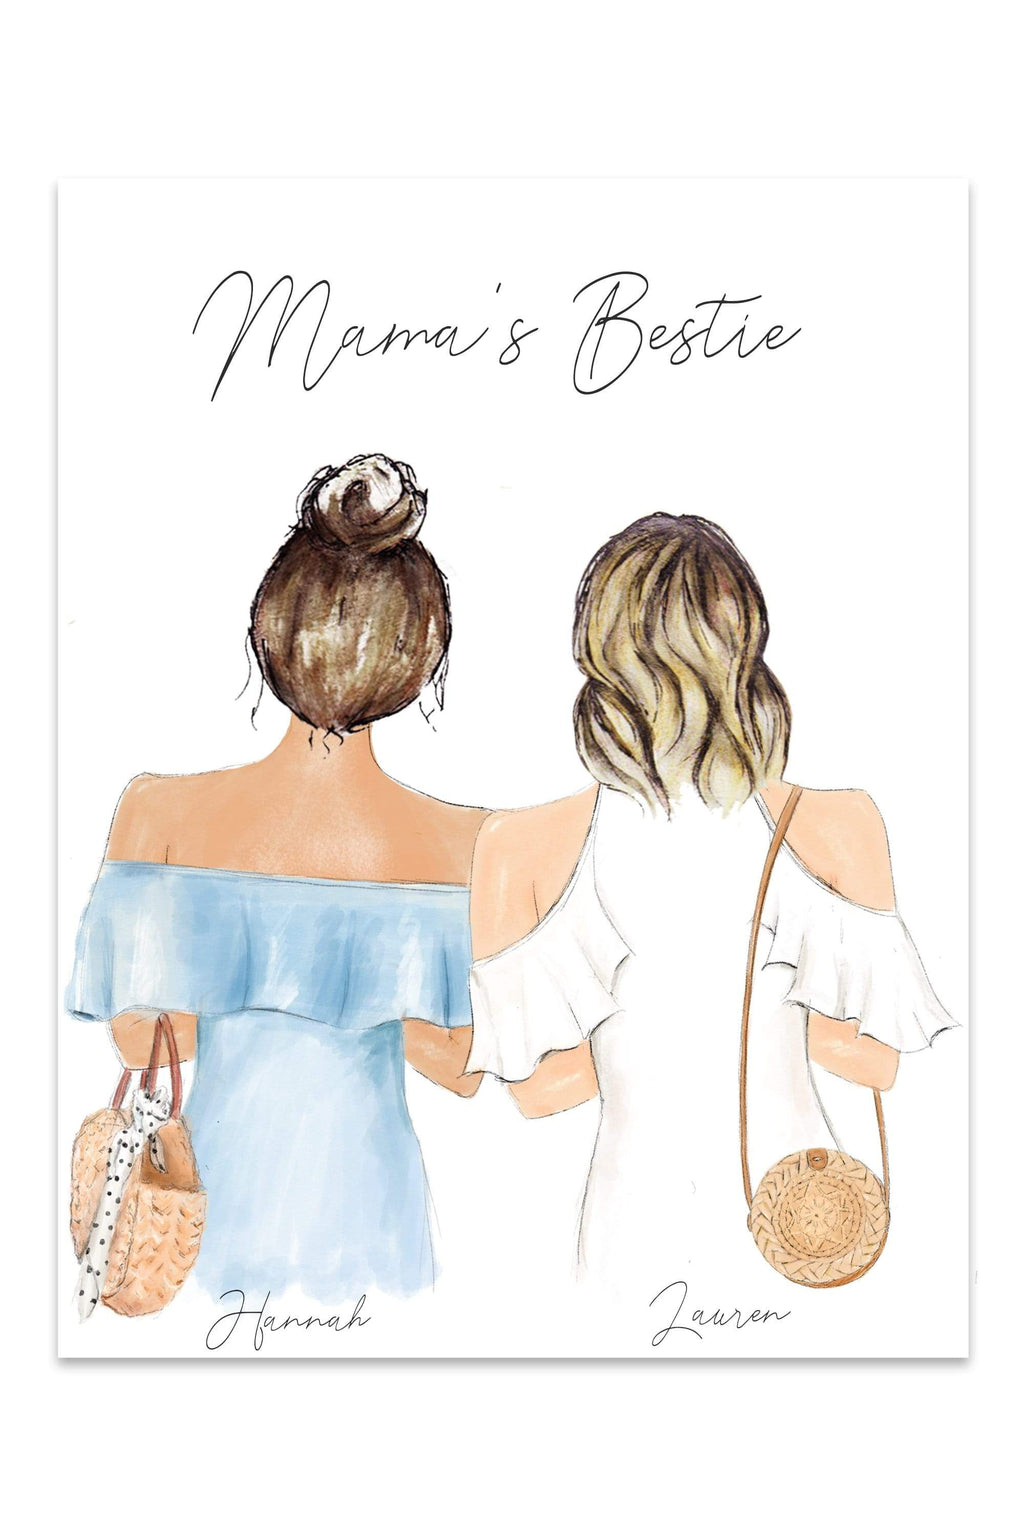 Mama's Bestie Print Art or Mug - this artwork is perfect for the mother or mother figure in your life at Glacelis